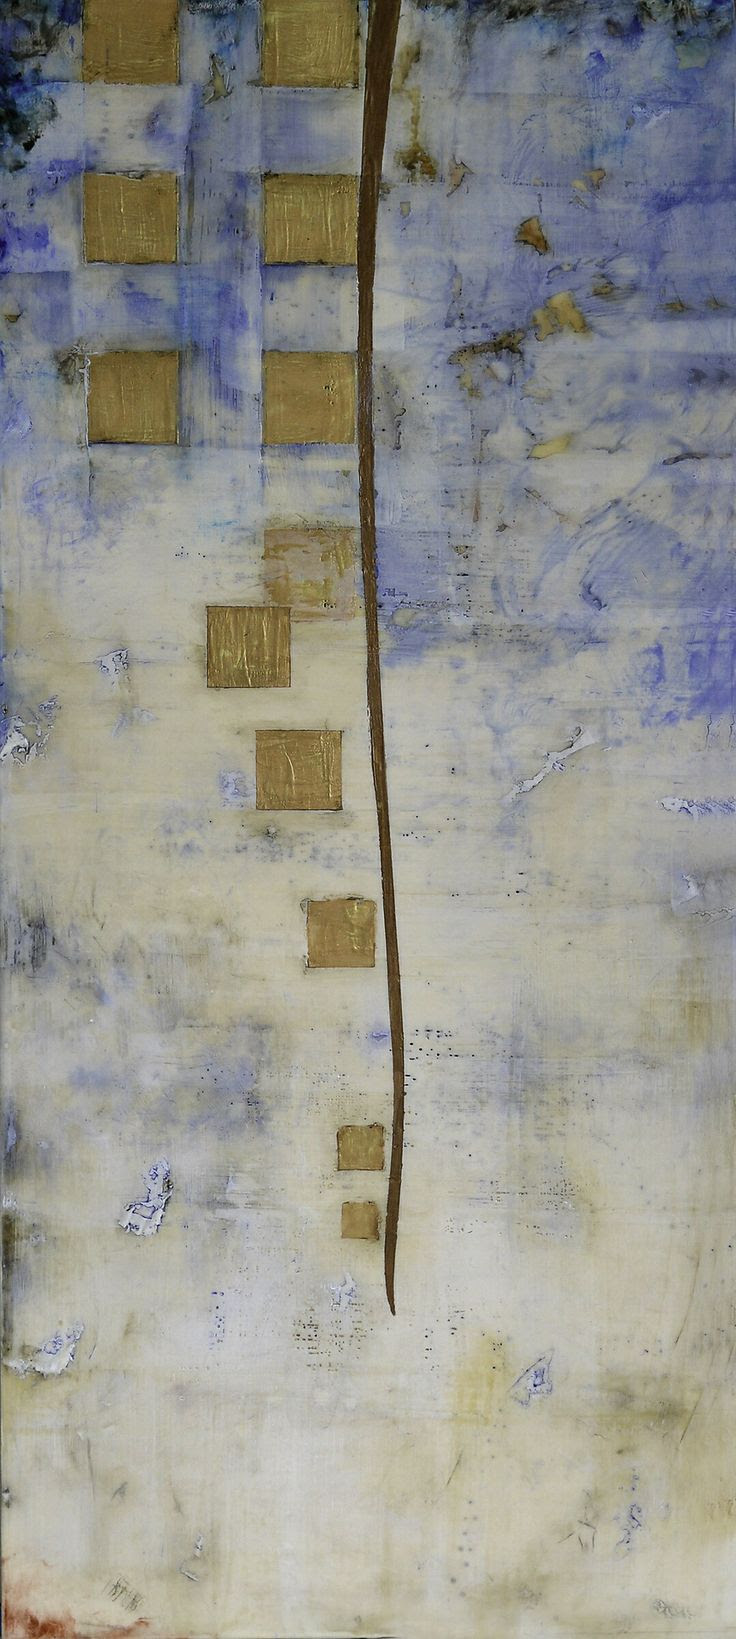 "'Boketto'-36"" x 16""-encaustic on panel by Lisa Bick"